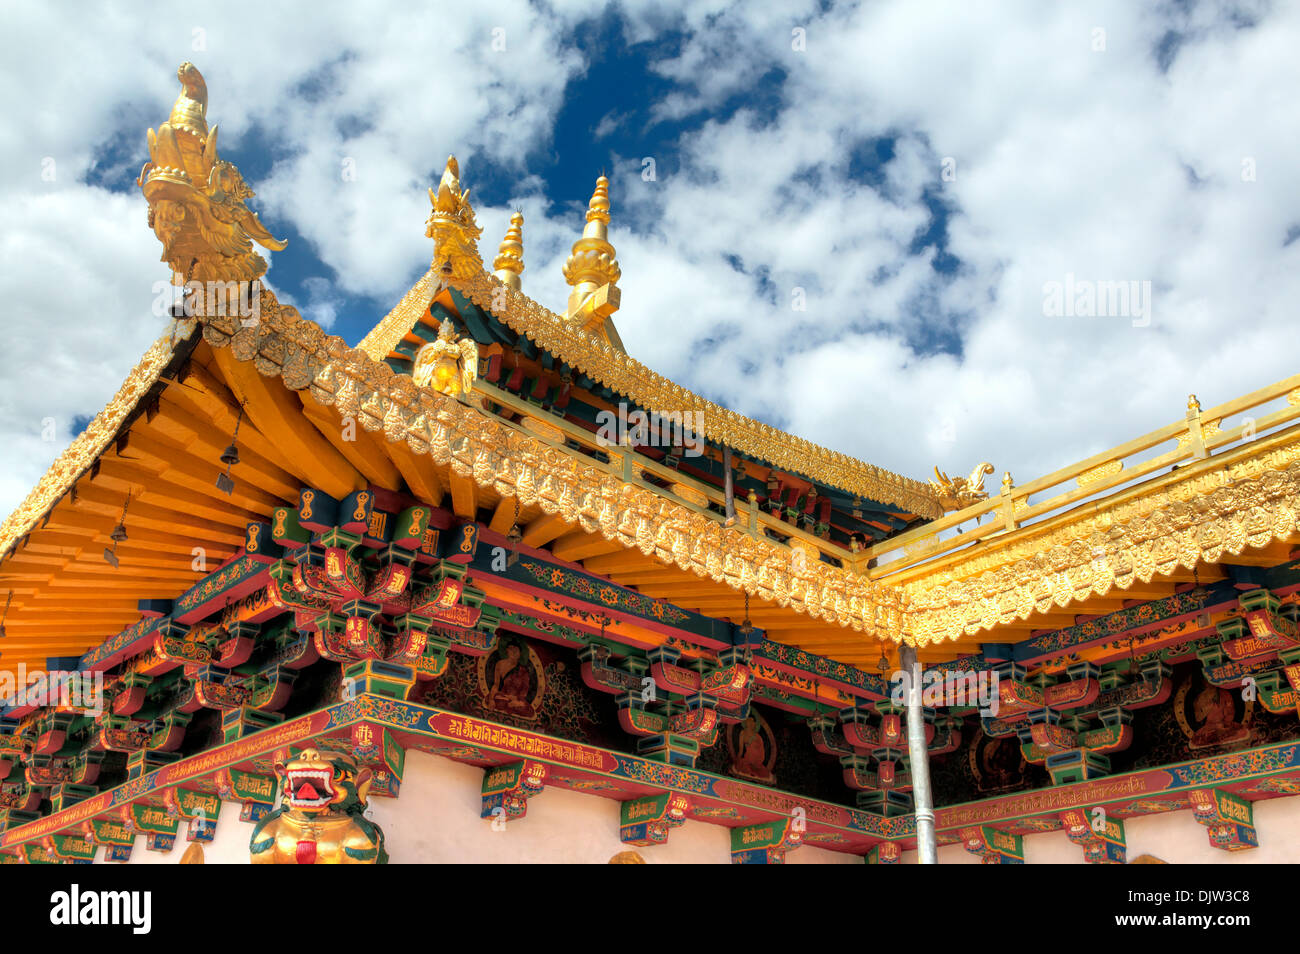 Jokhang temple, Lhasa, Tibet, China - Stock Image